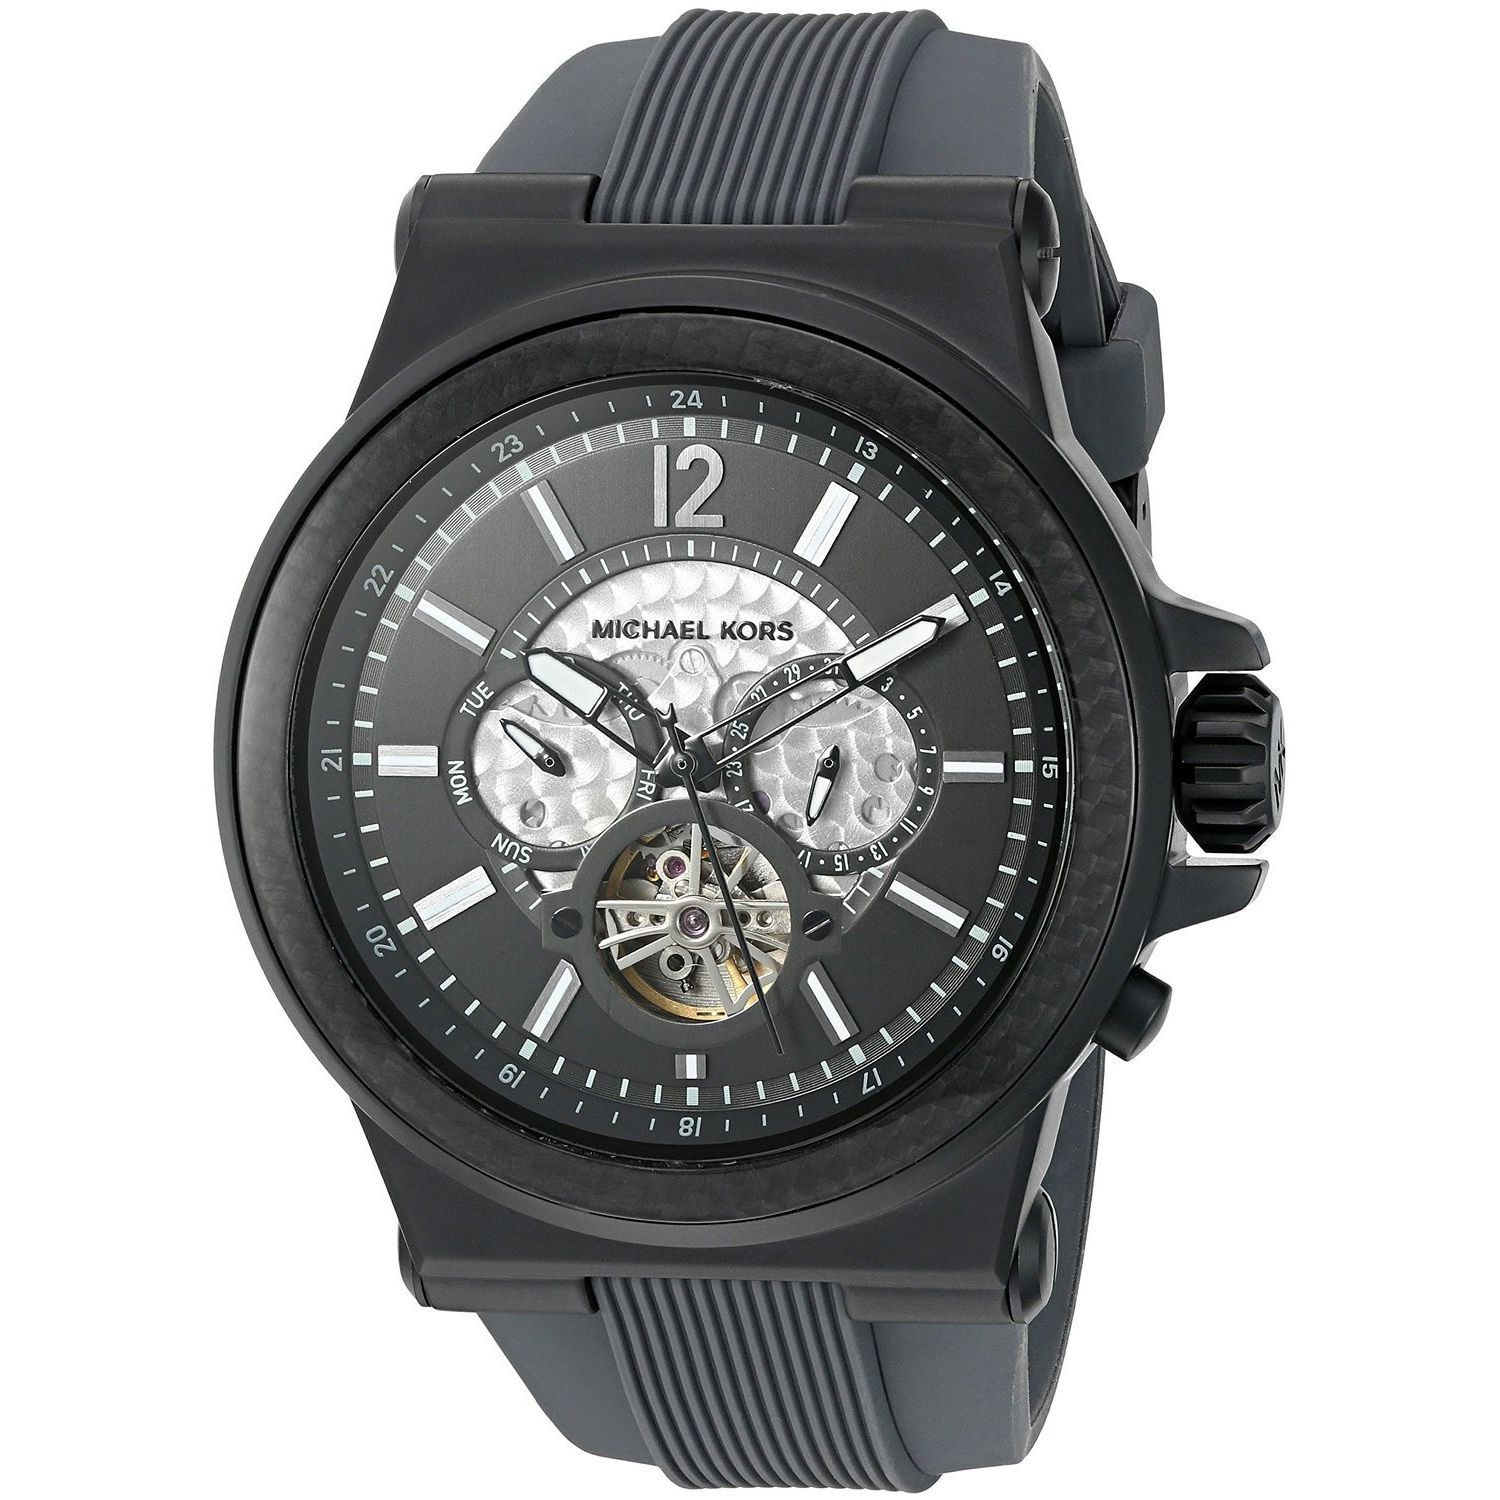 561ad1656c56 Shop Michael Kors Men s MK9026  Dylan  Multi-Function Black Silicone Watch  - On Sale - Free Shipping Today - Overstock - 12332195